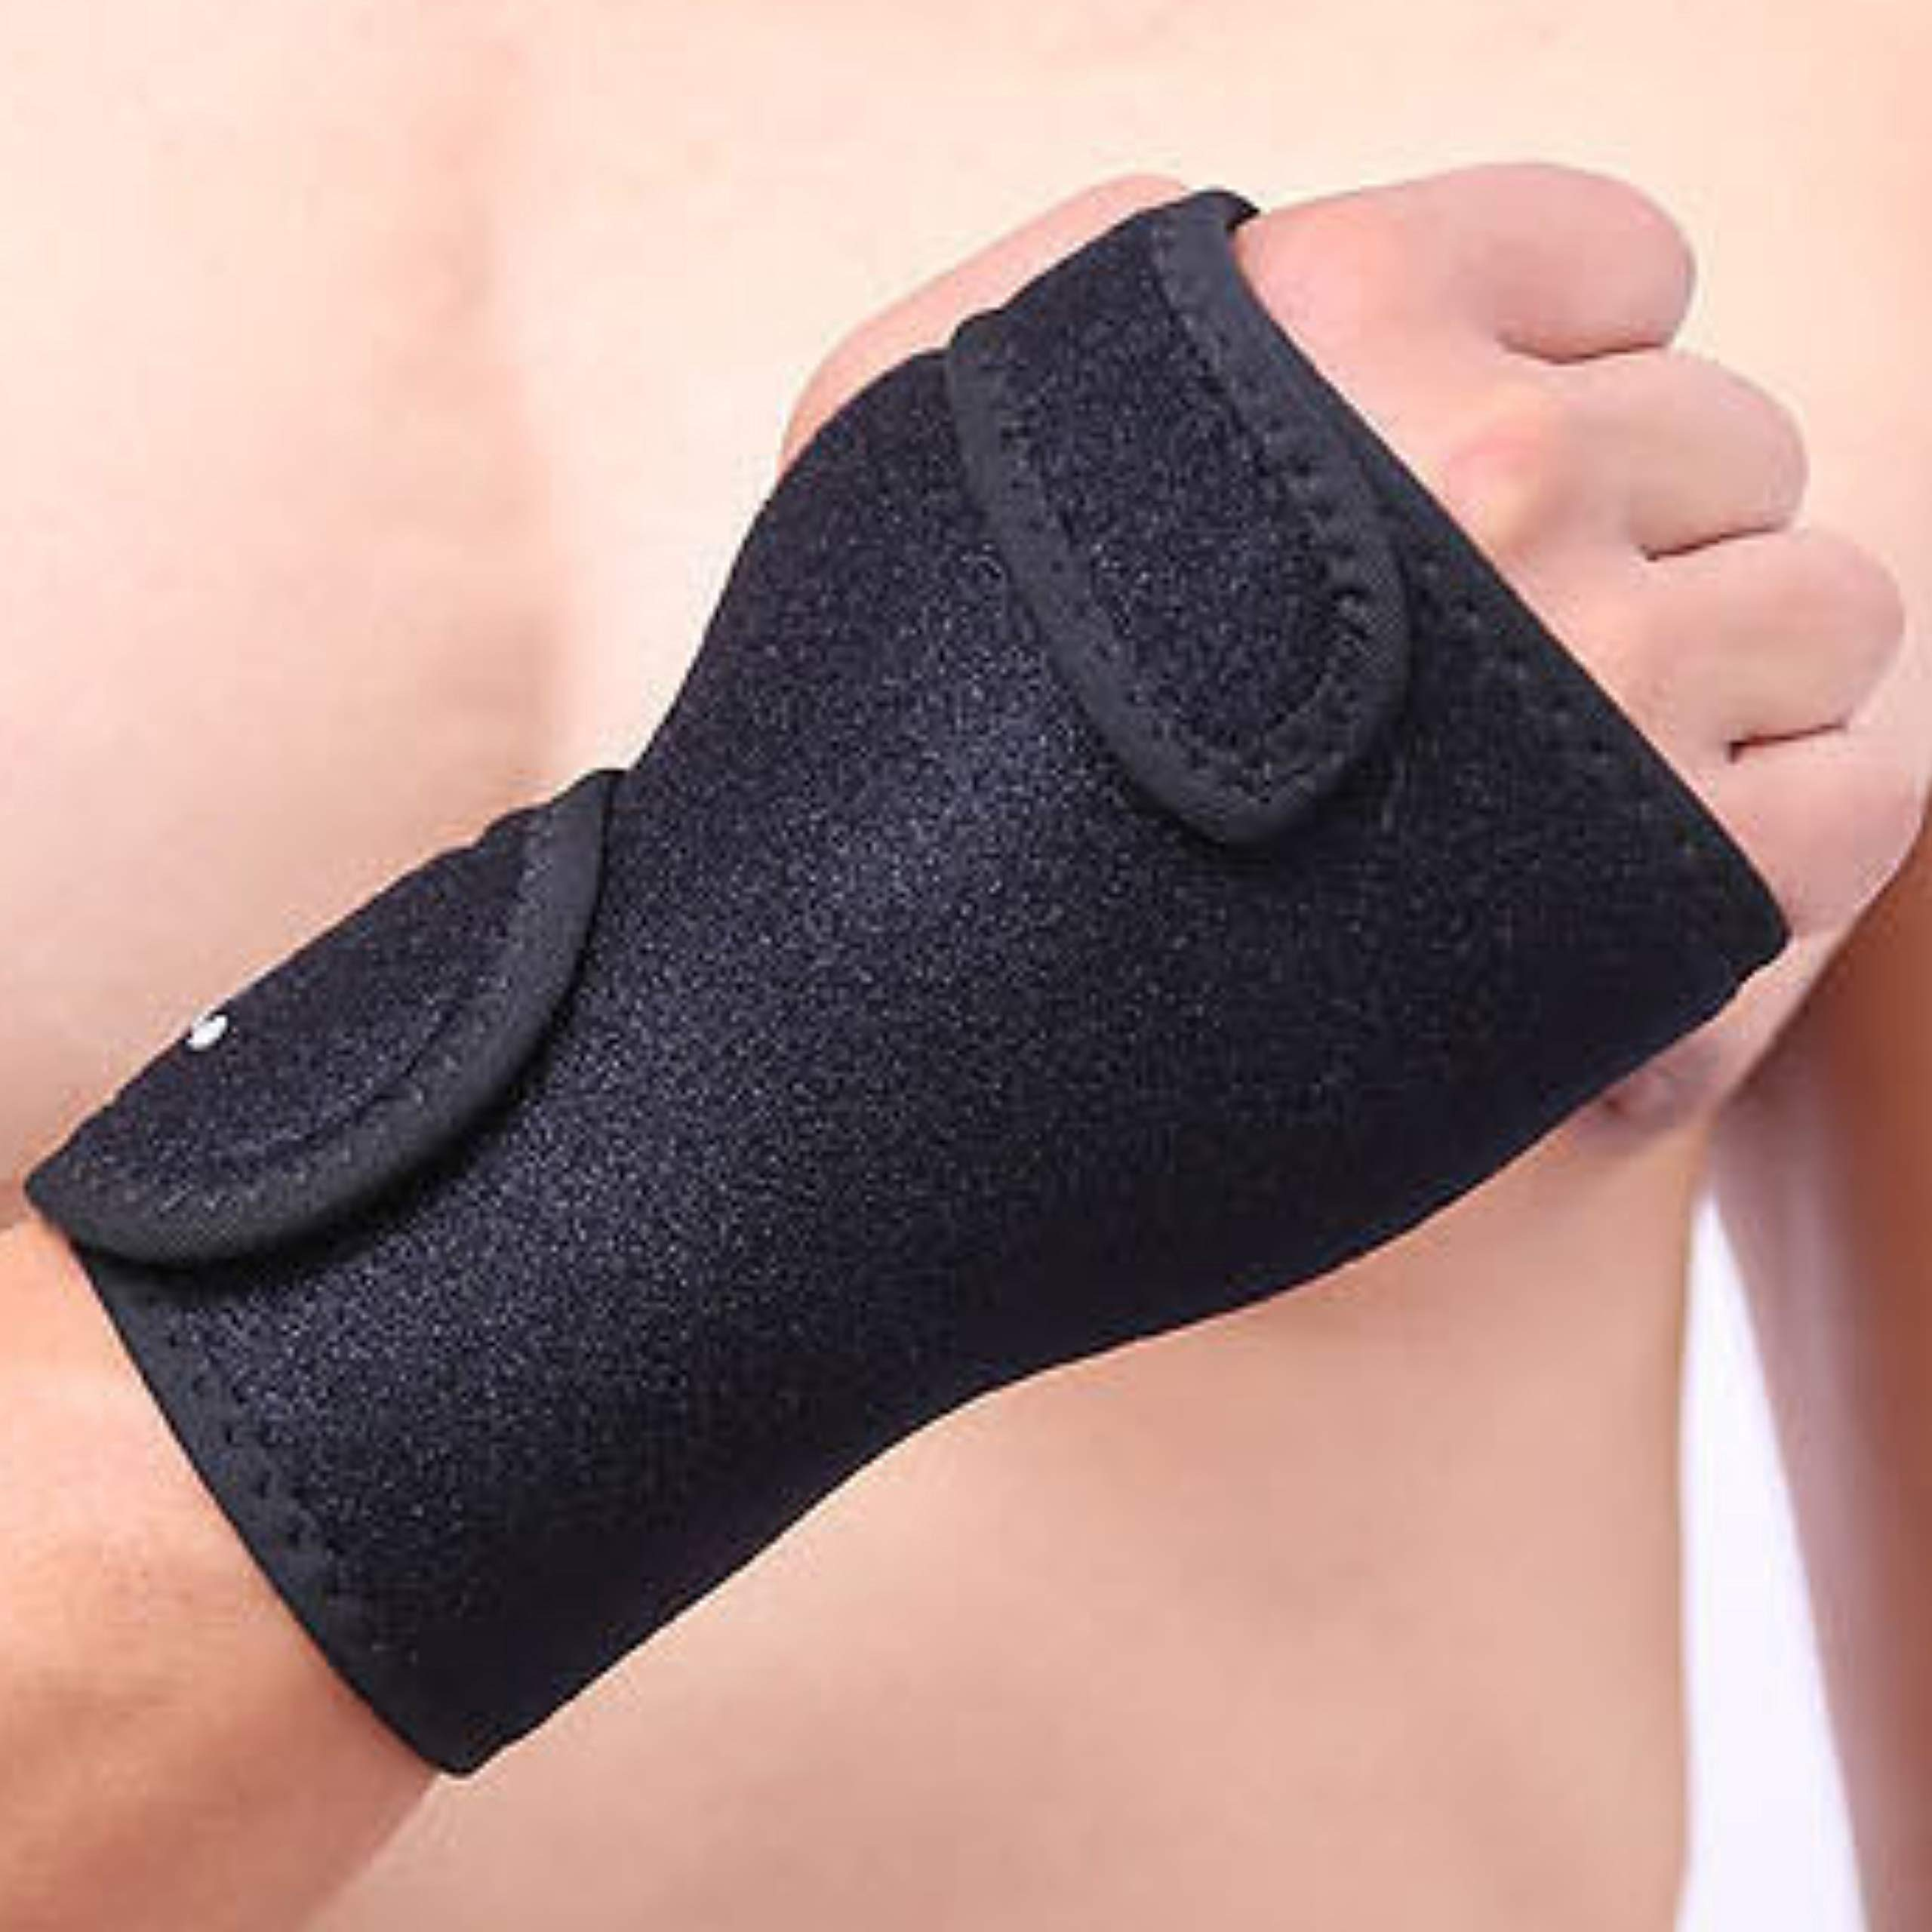 #1 Carpal Tunnel Wrist Brace Support by MONALE – Night & Day Use– Tendonitis – Arthritis – with Removable Splint & Adjustable Support Wrap – Right & Left Hand Available - Black (Right)